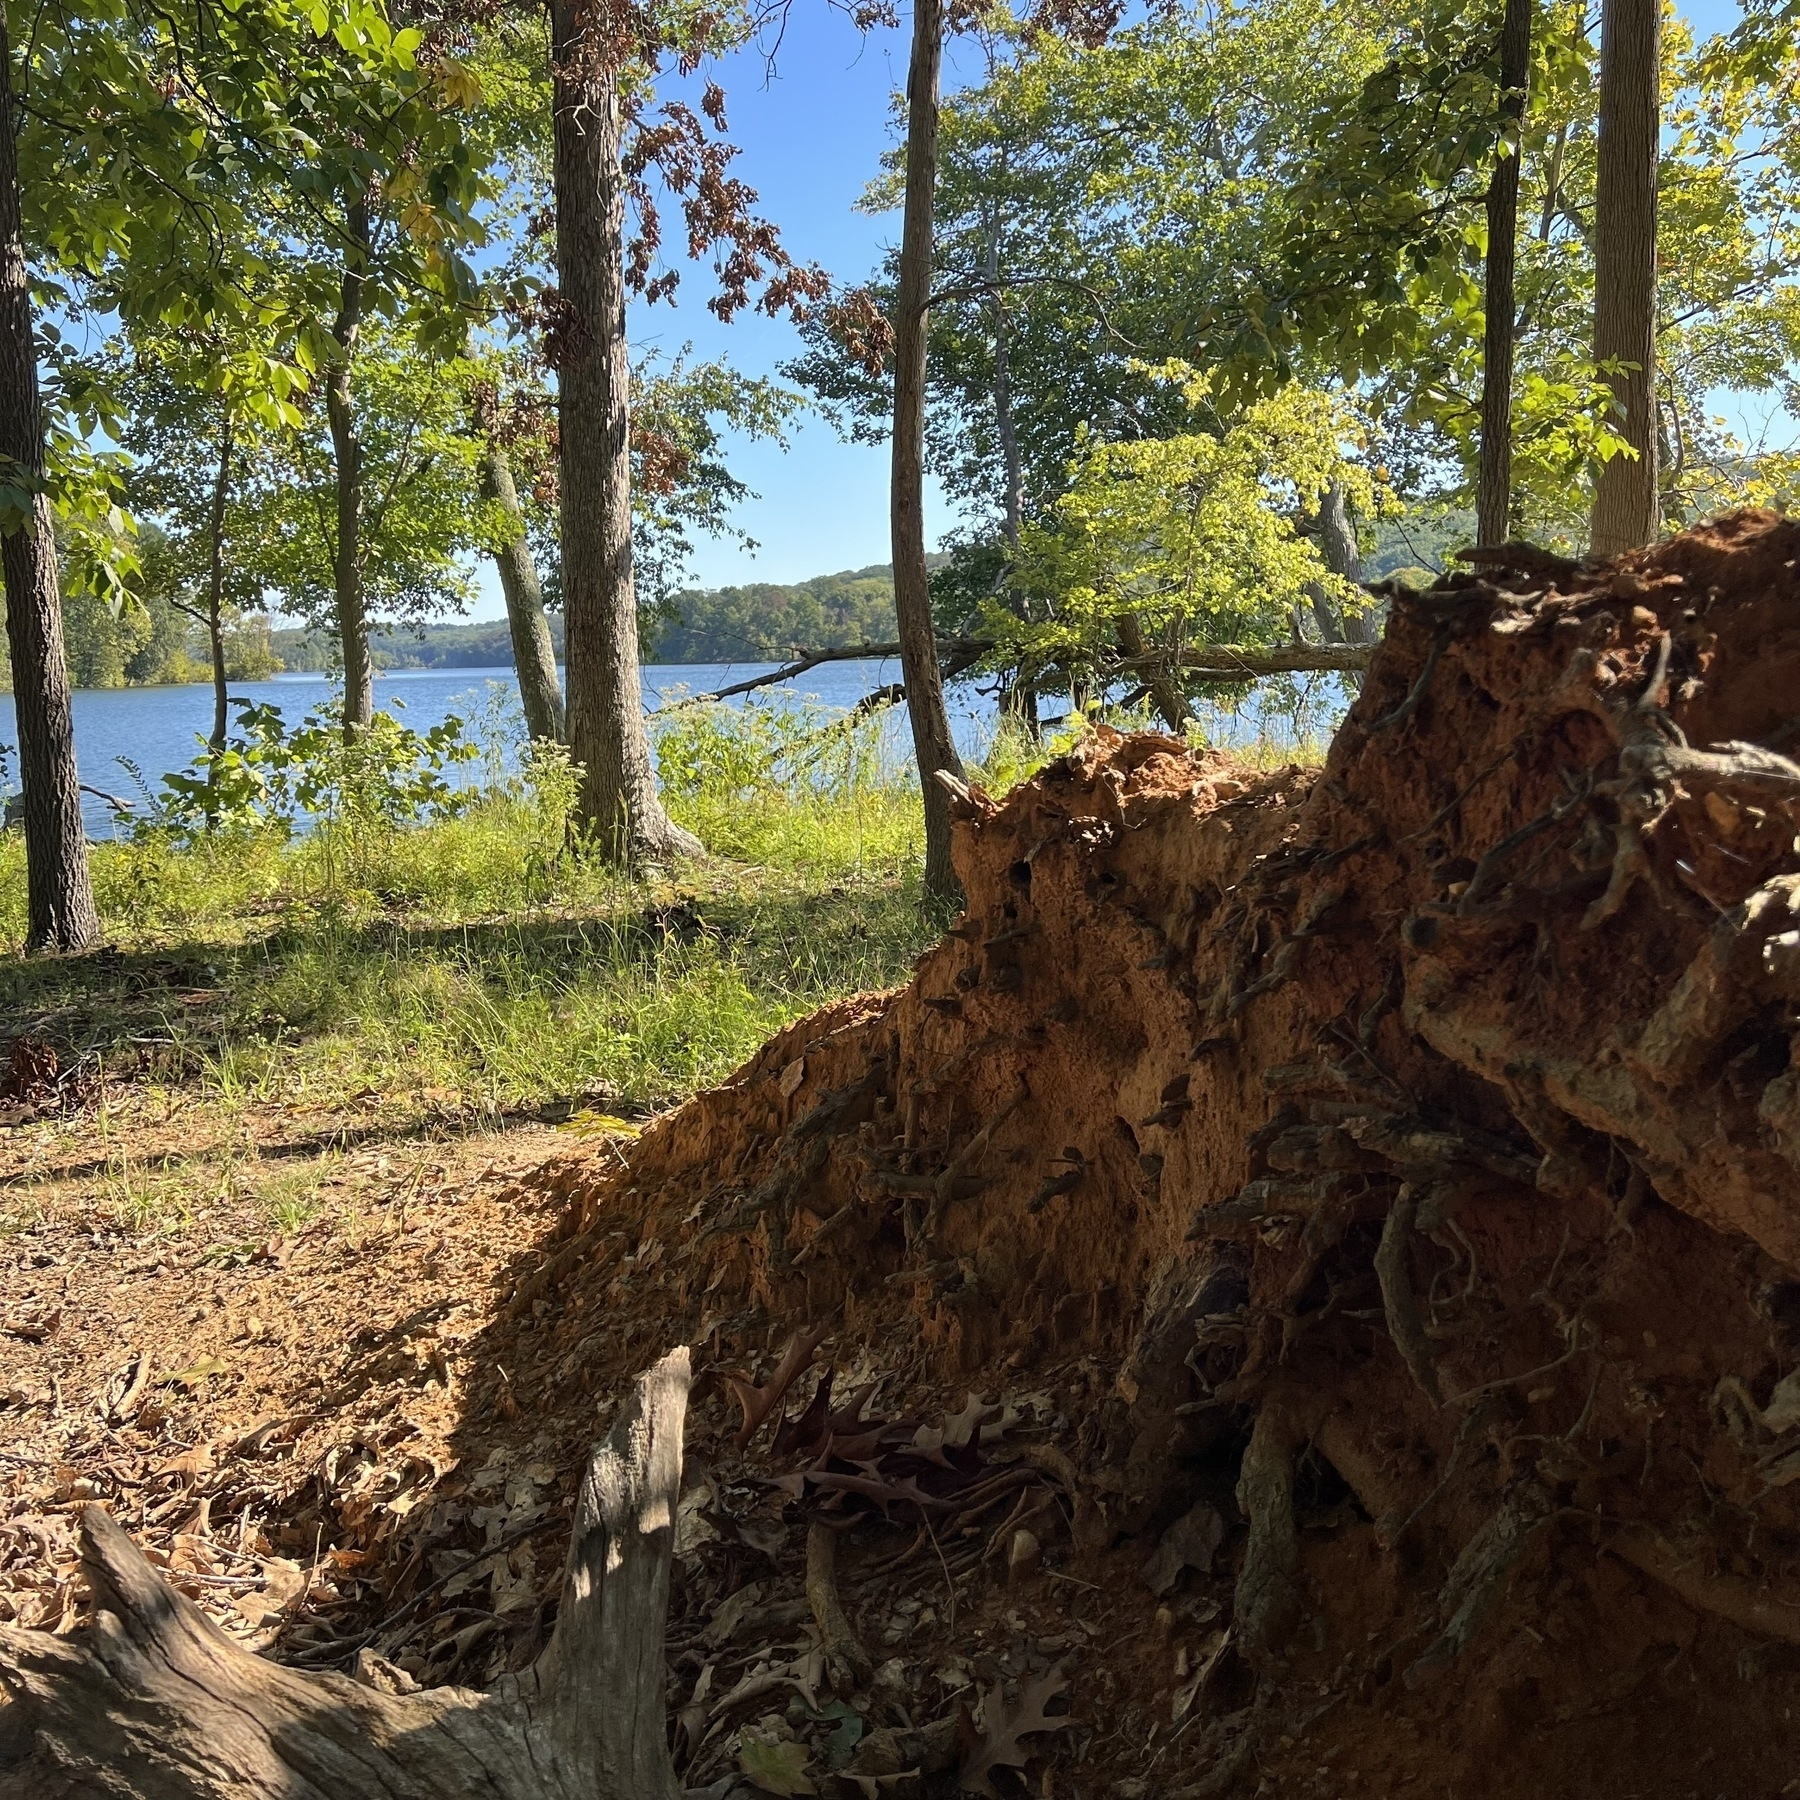 Uprooted tree with the reservoir behind it.